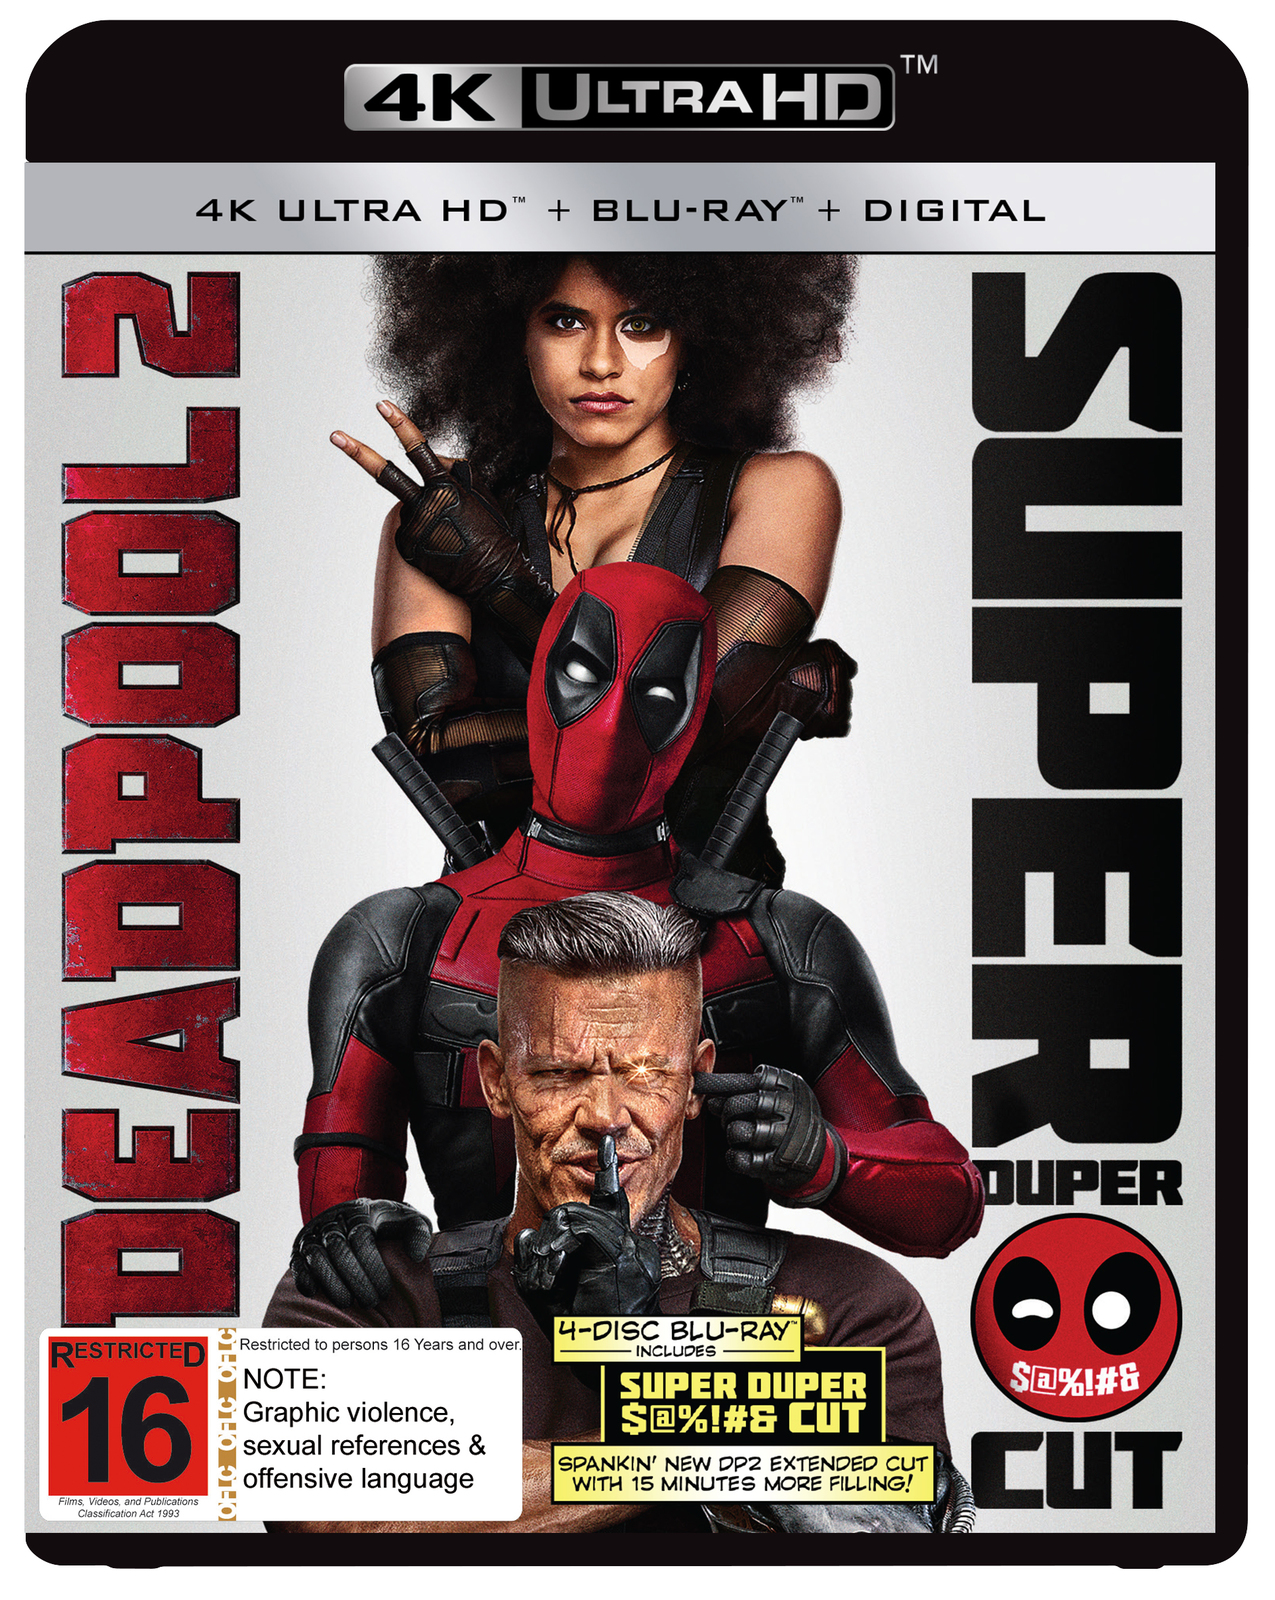 Deadpool 2 (Special Edition) on Blu-ray, UHD Blu-ray, DC image